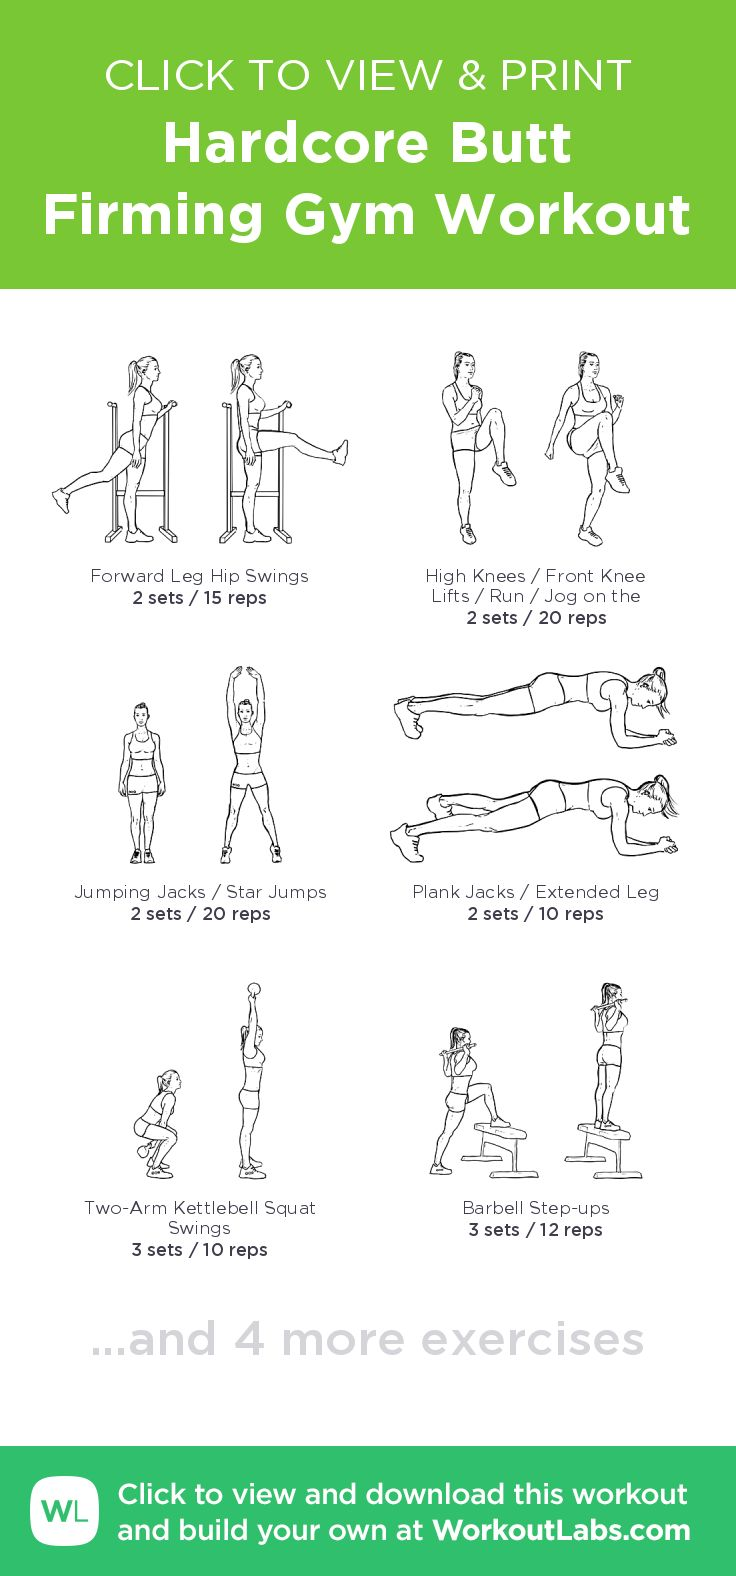 Hardcore Butt Firming Gym Workout –click to view and print this illustrated exercise plan created with #WorkoutLabsFit